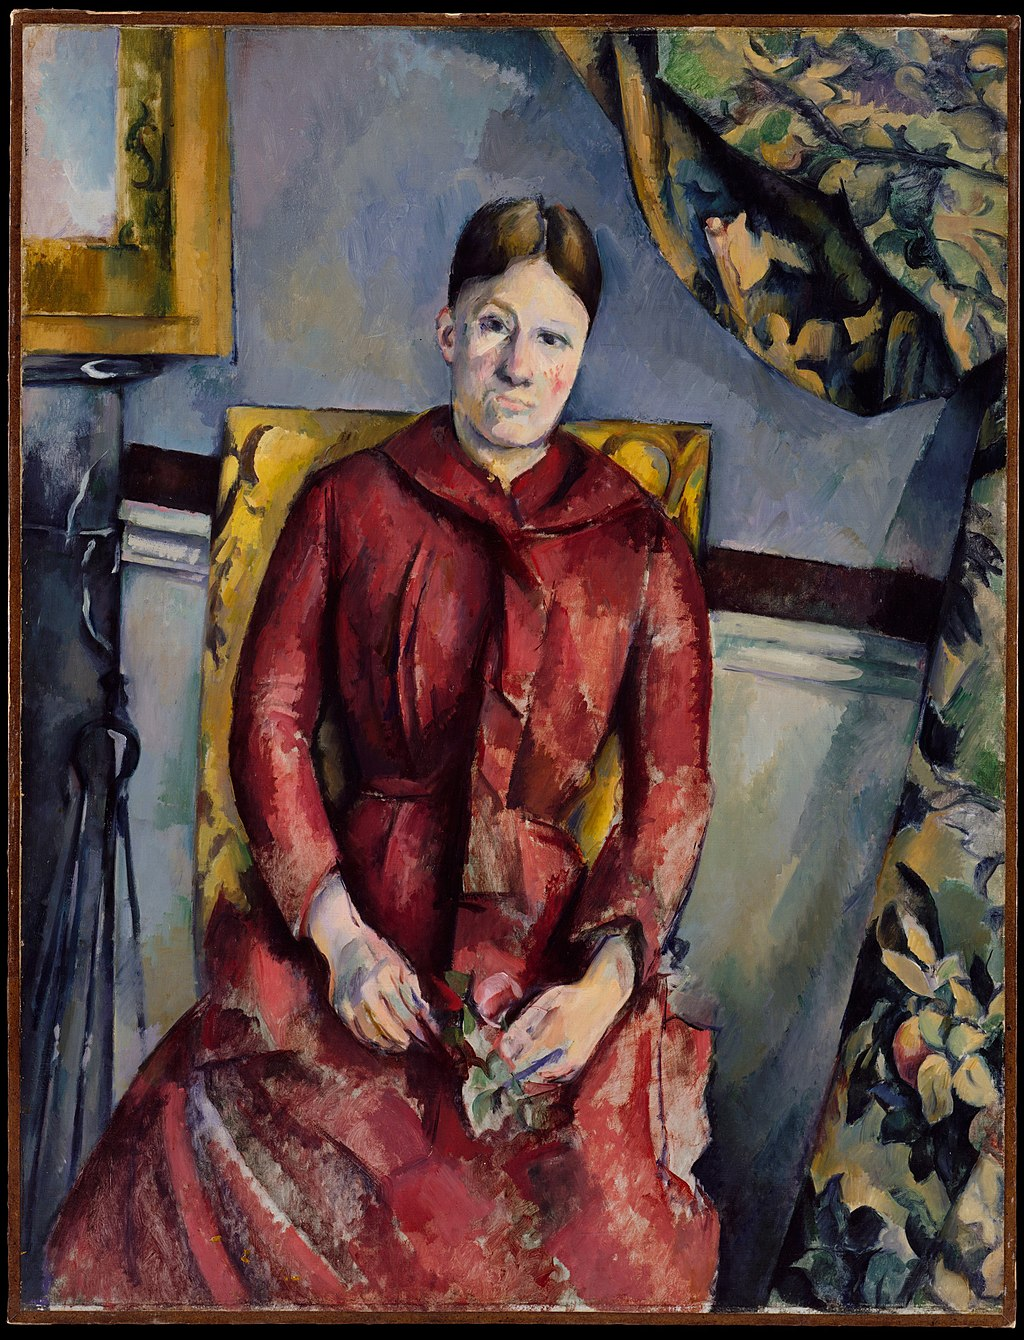 """Madame Cézanne in a Red Dress"" by Paul Cézanne"